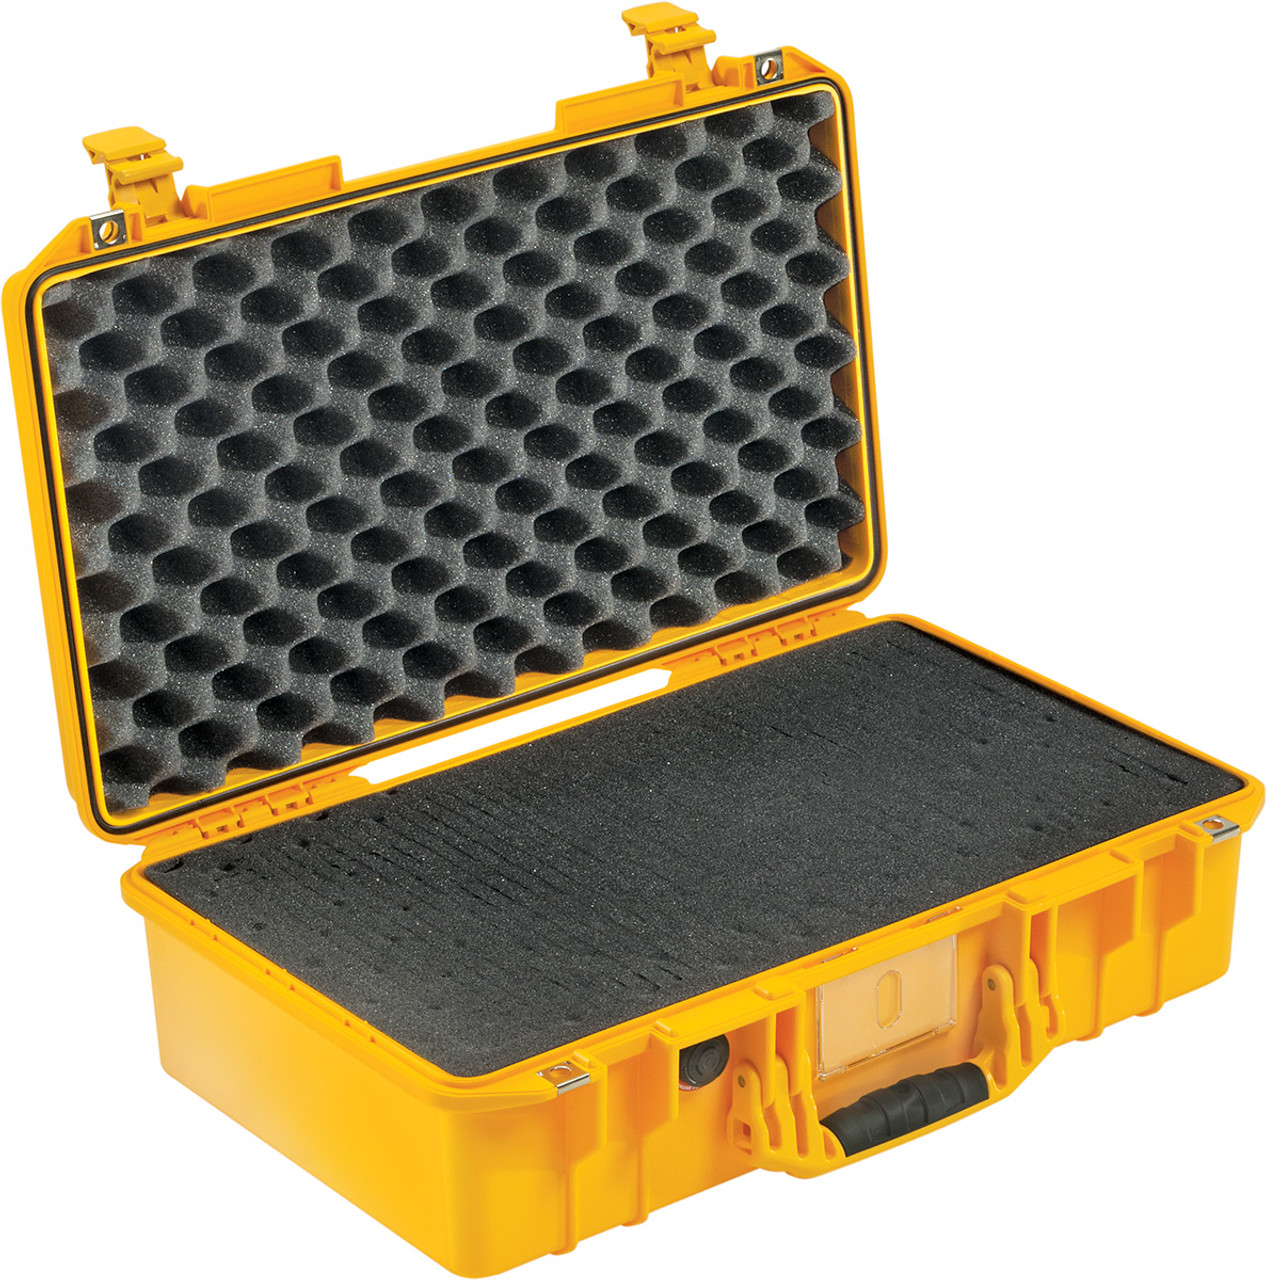 Pelican 1525 Air Small Case - Super Lightweight Design, with Optional Foam Insert, Padded Dividers or TrekPak Divider System, Available in Black, Orange, Silver, or Yellow, 23x15x16, 19 lbs (w-out foam, 16 lbs)